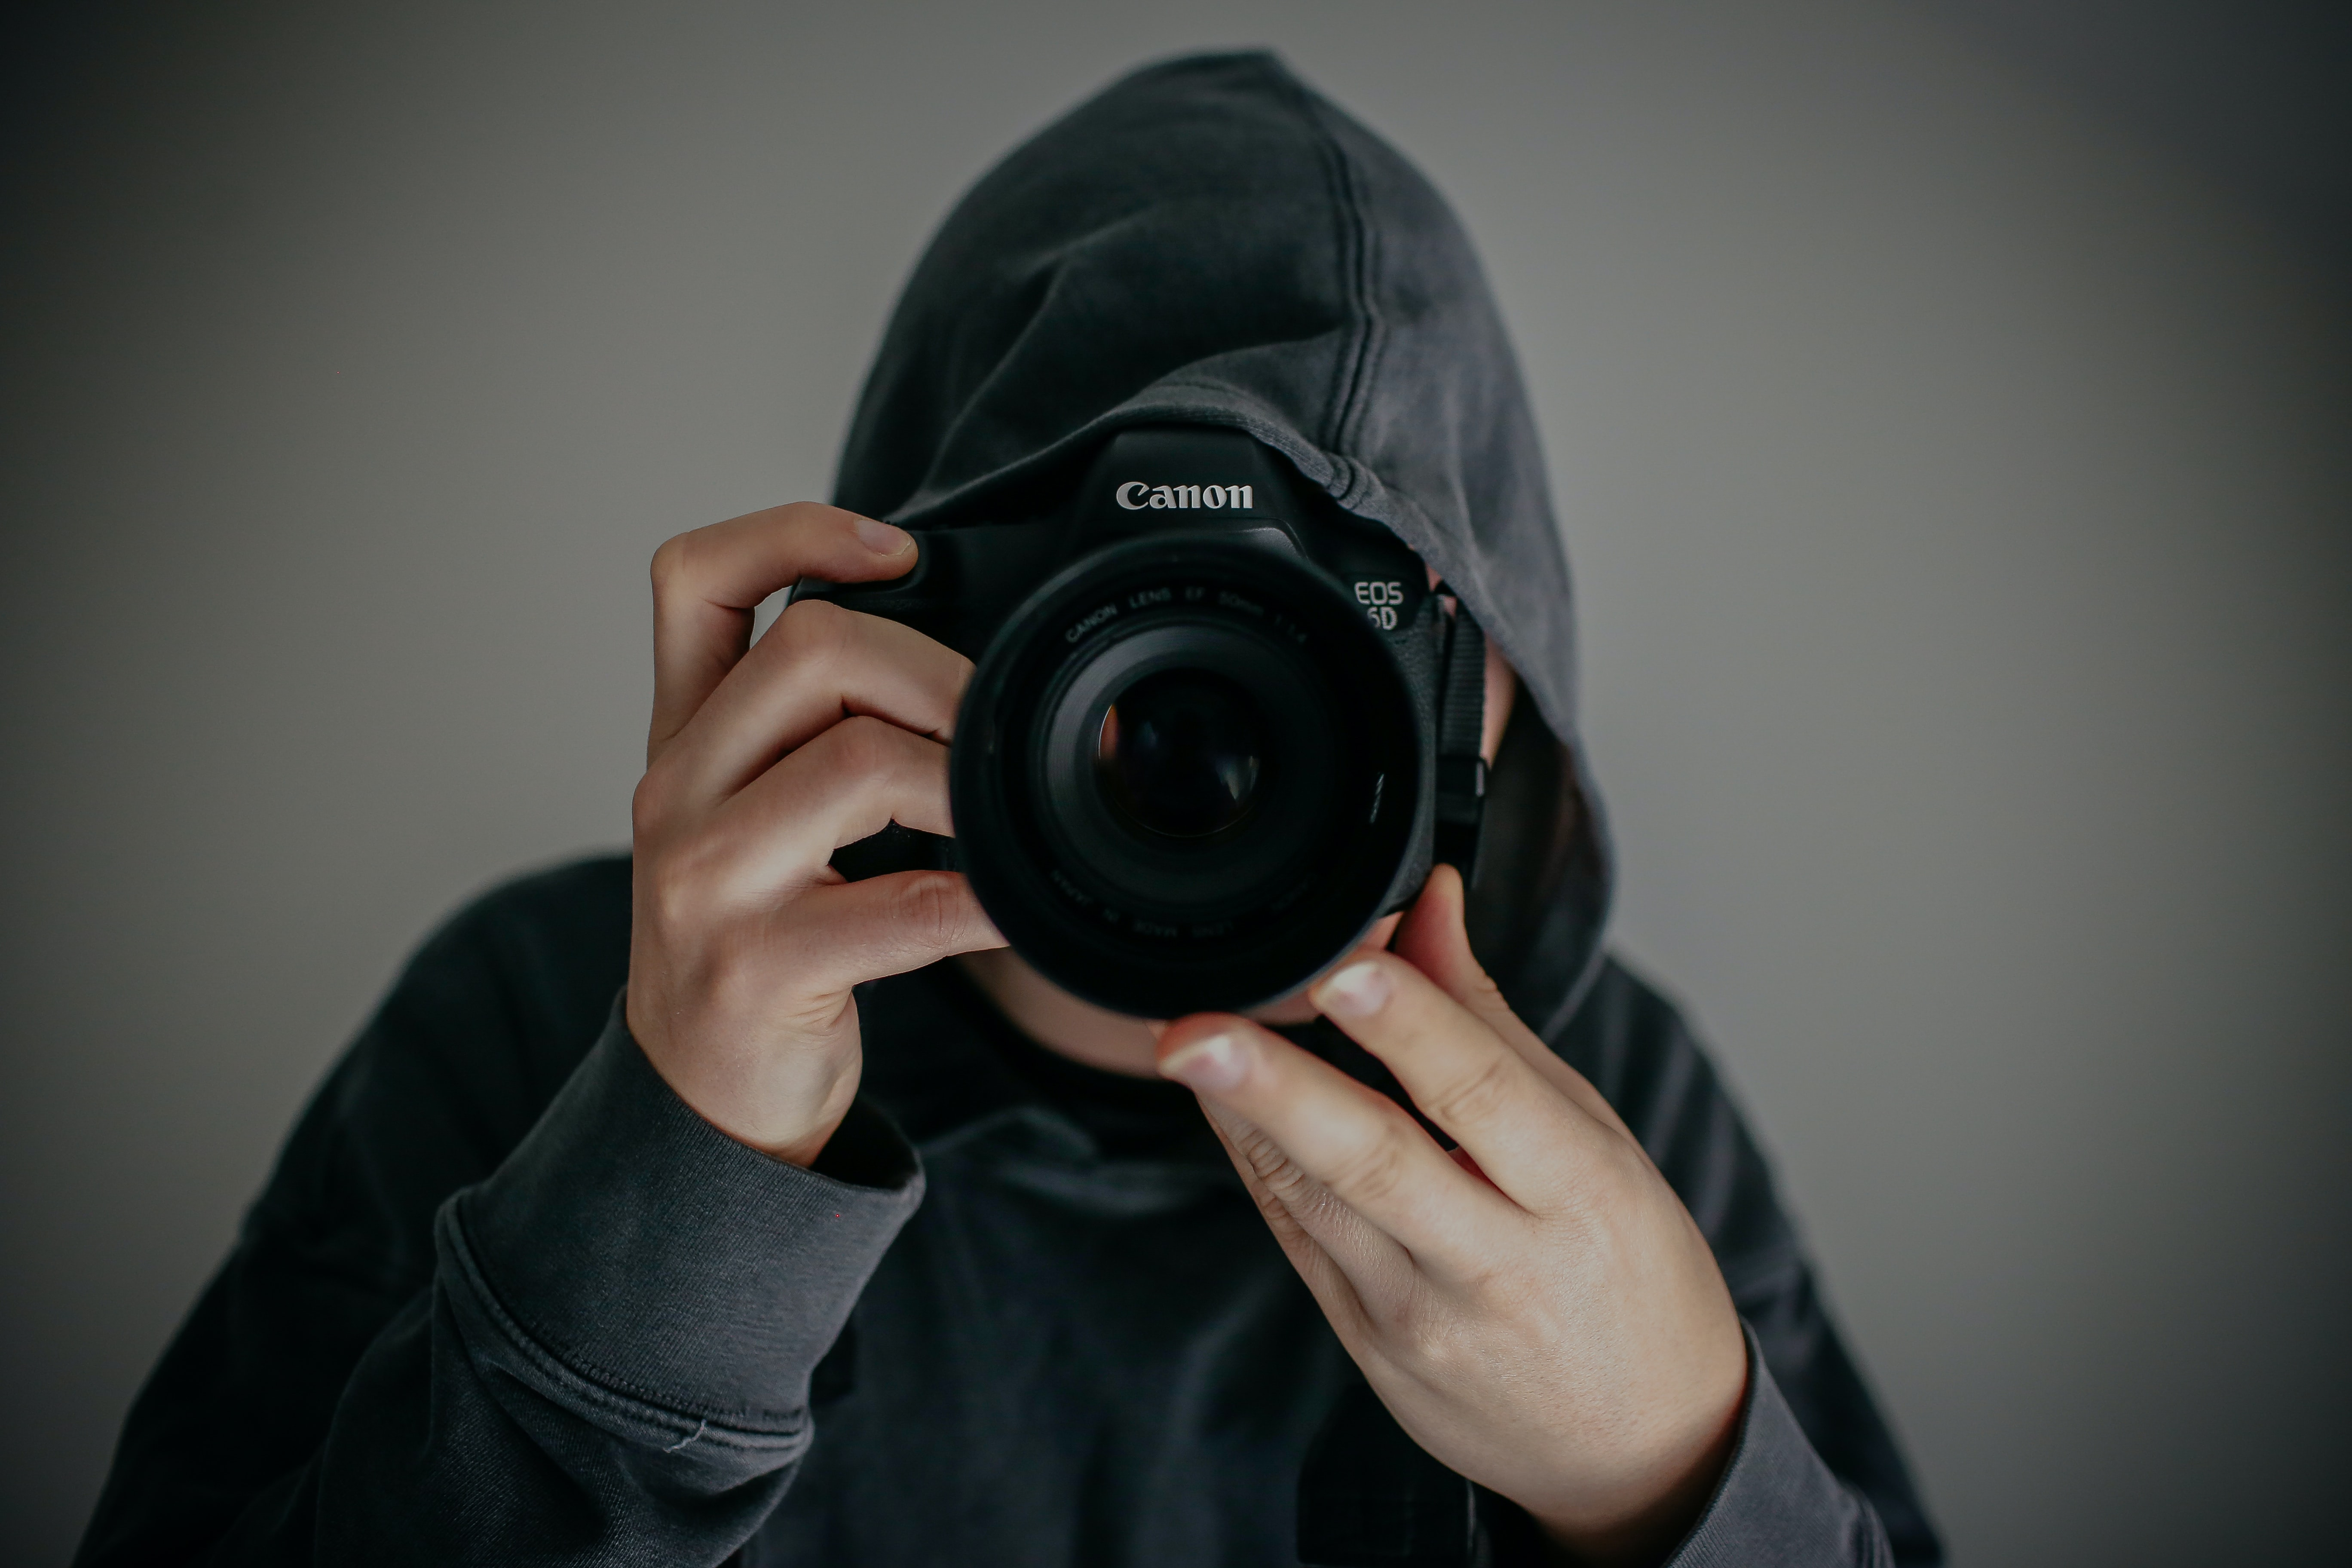 A guy in a hoodie taking a photo with a Canon camera